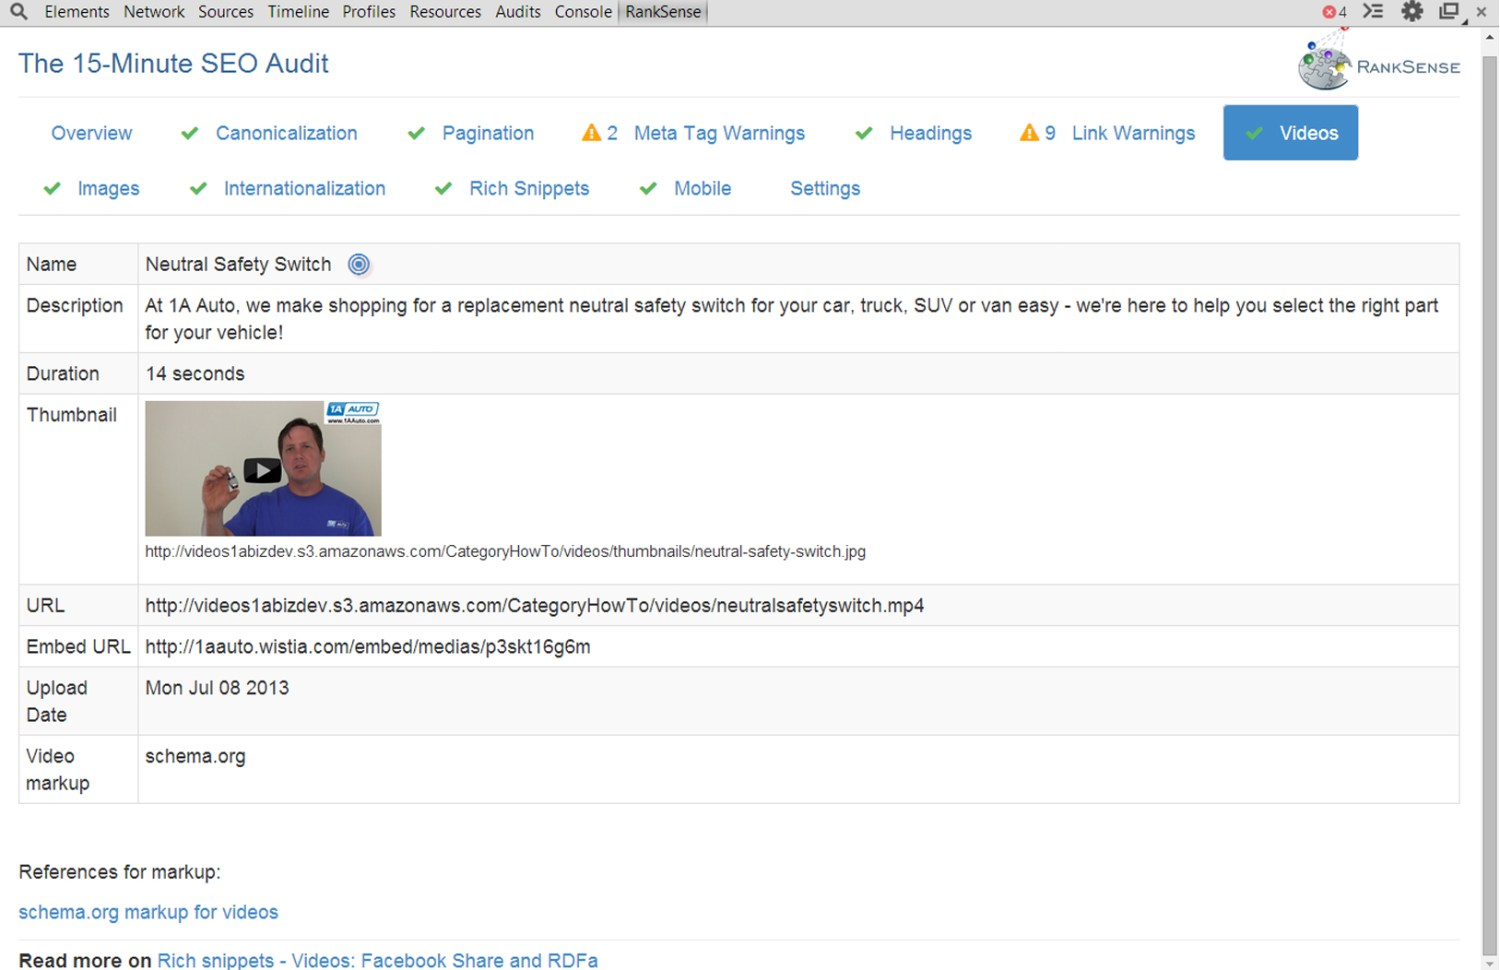 15 Minute SEO Audit Screenshot 5 Video